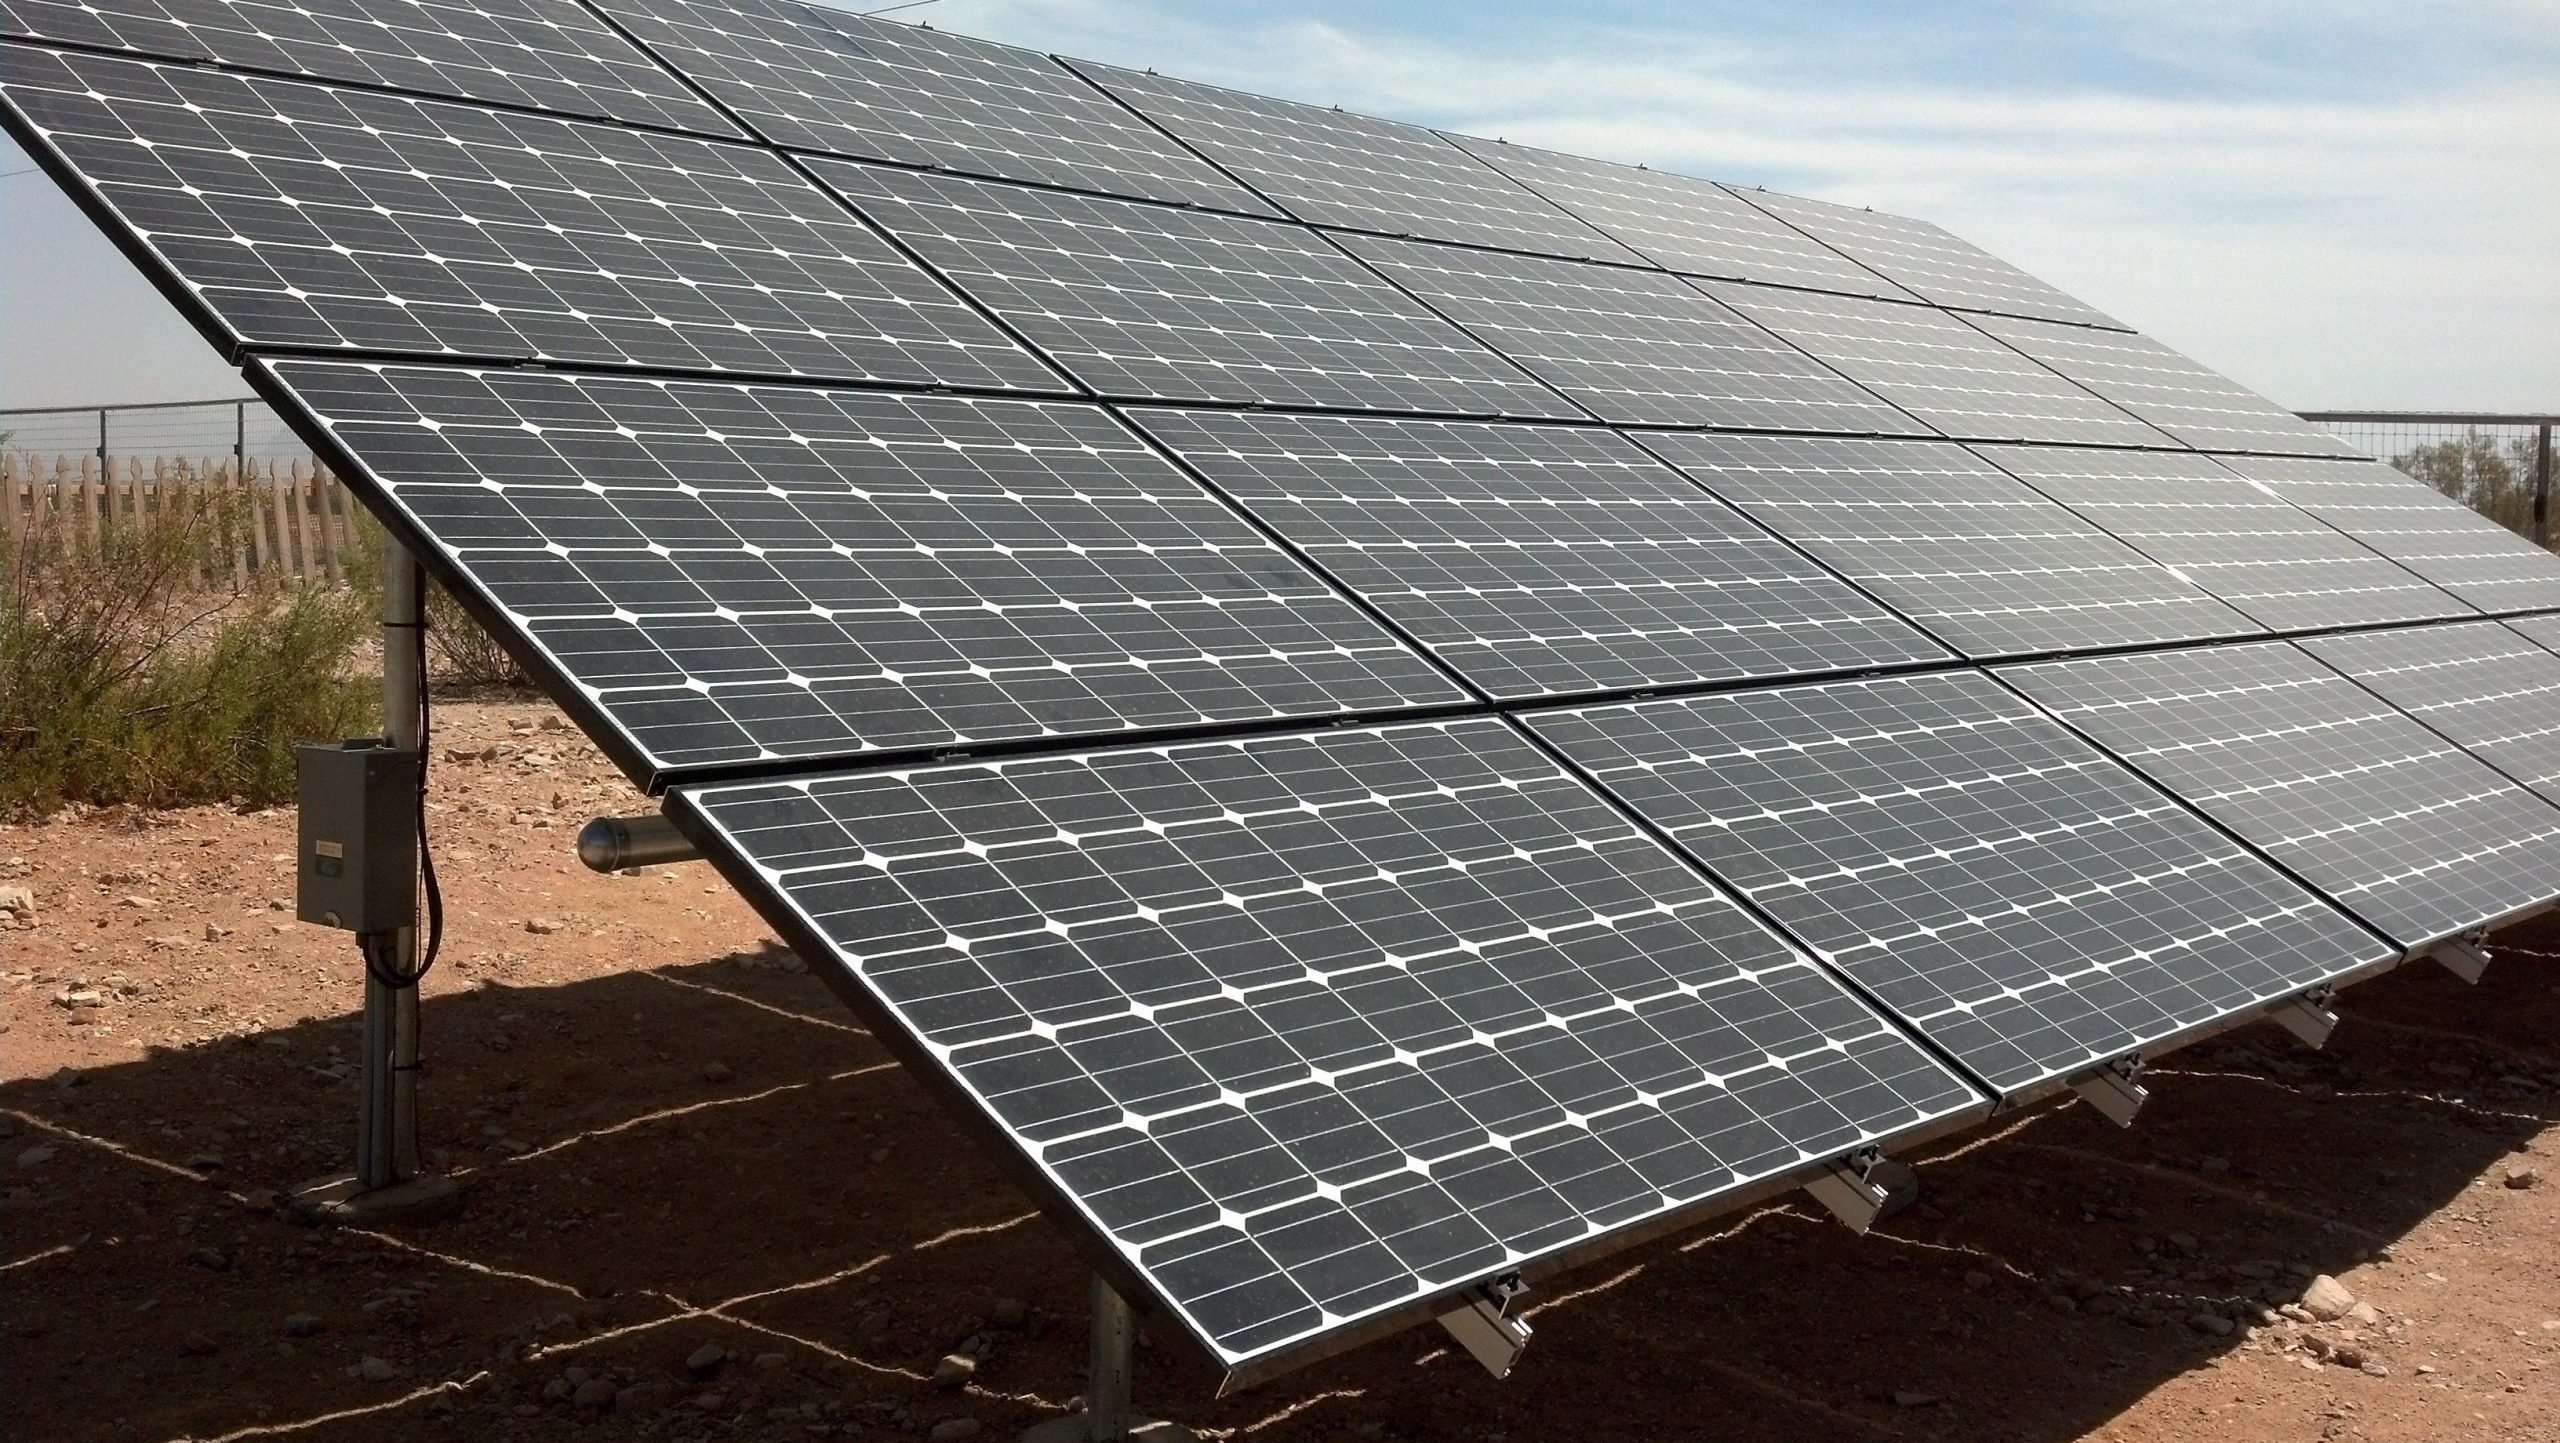 Queen Creek Solar Panel Ground Mount